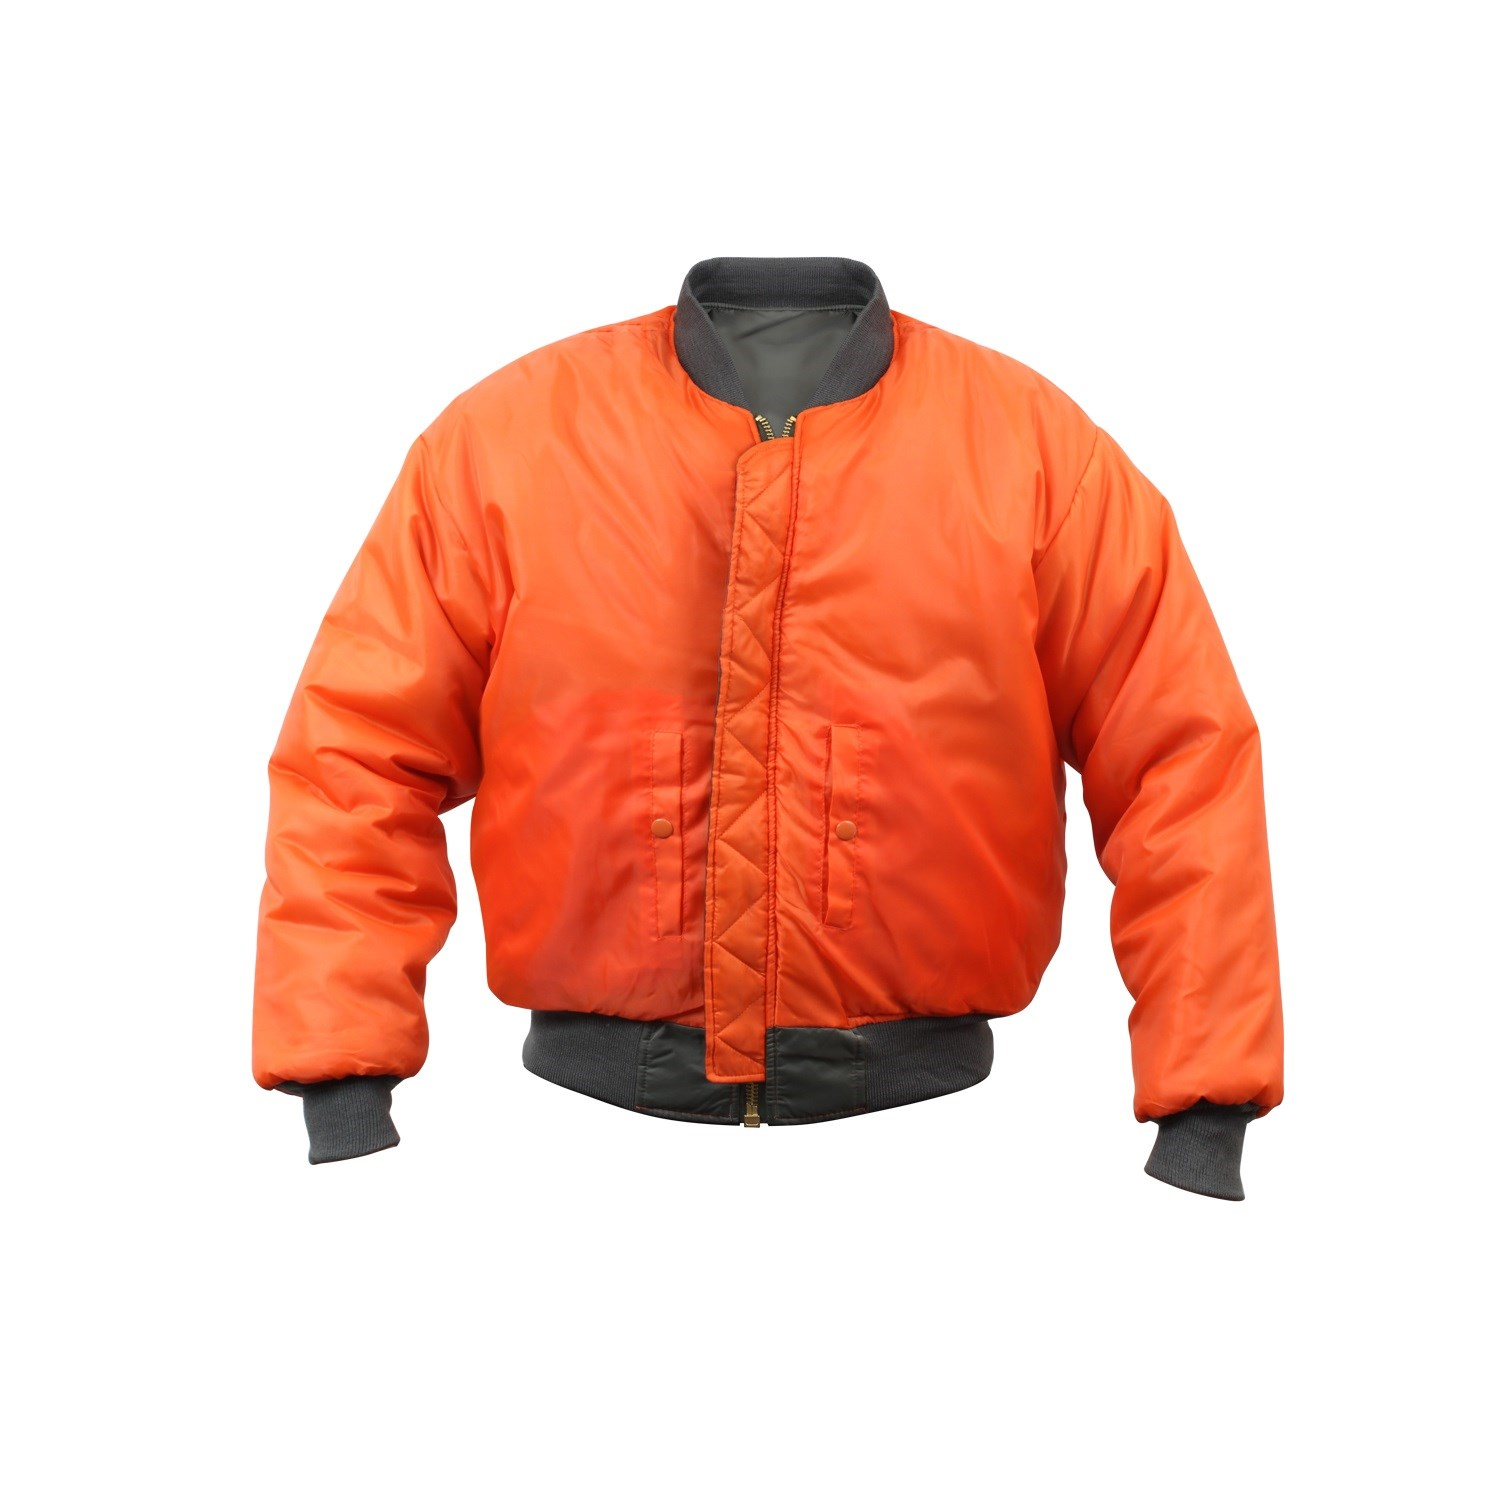 Jacket ULTRA FORCE MA1 FLIGHT WOODLAND ROTHCO 7332 L-11